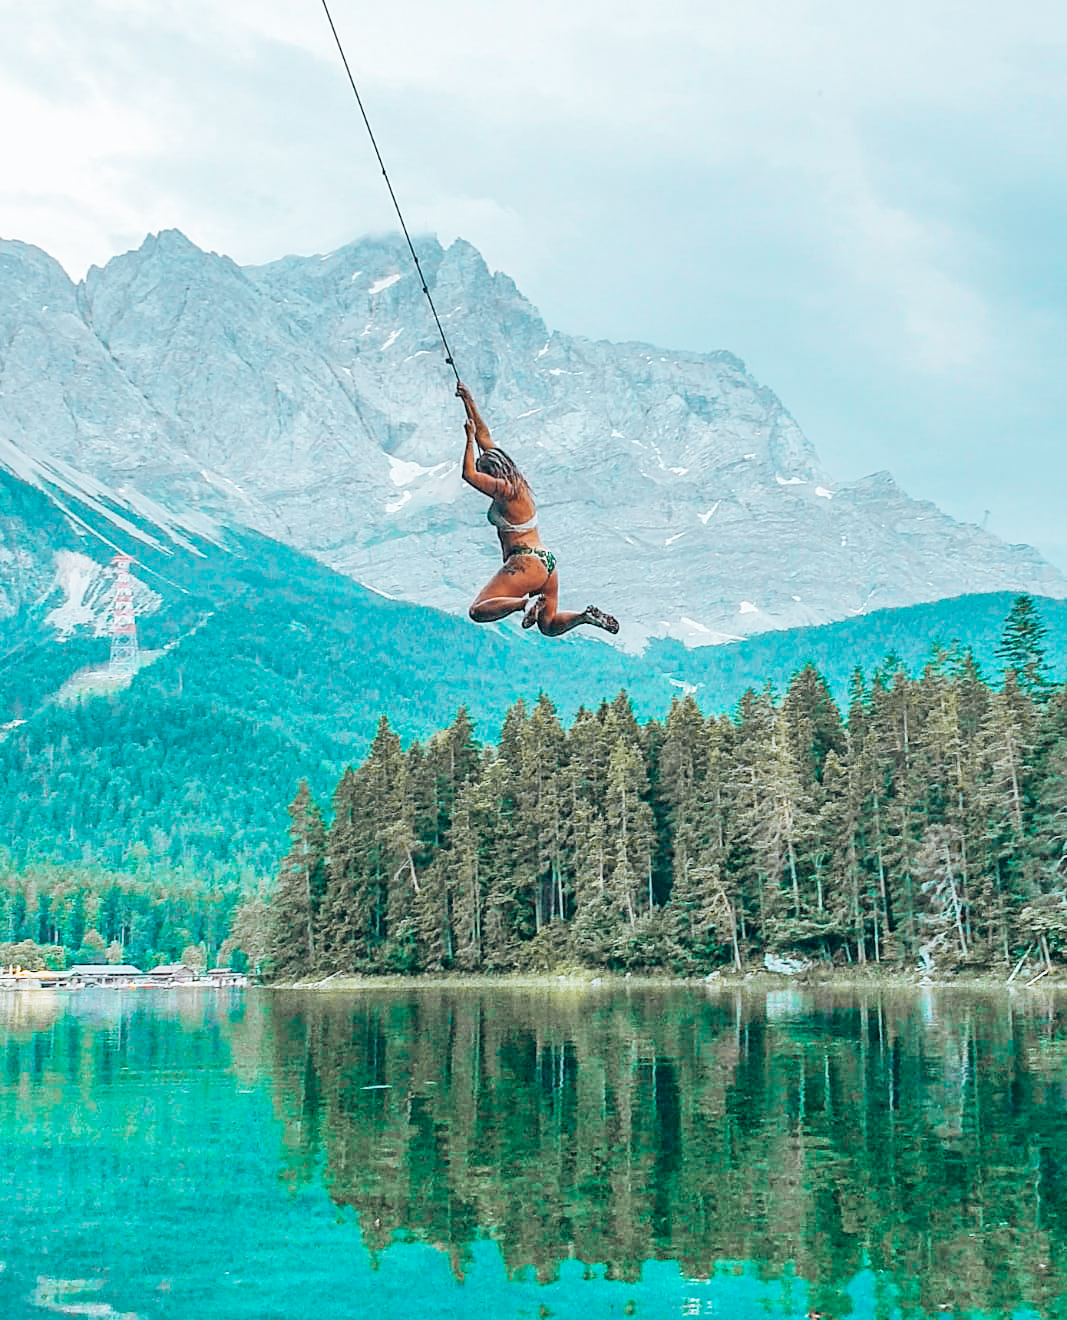 Swinging rope at lake Eibsee